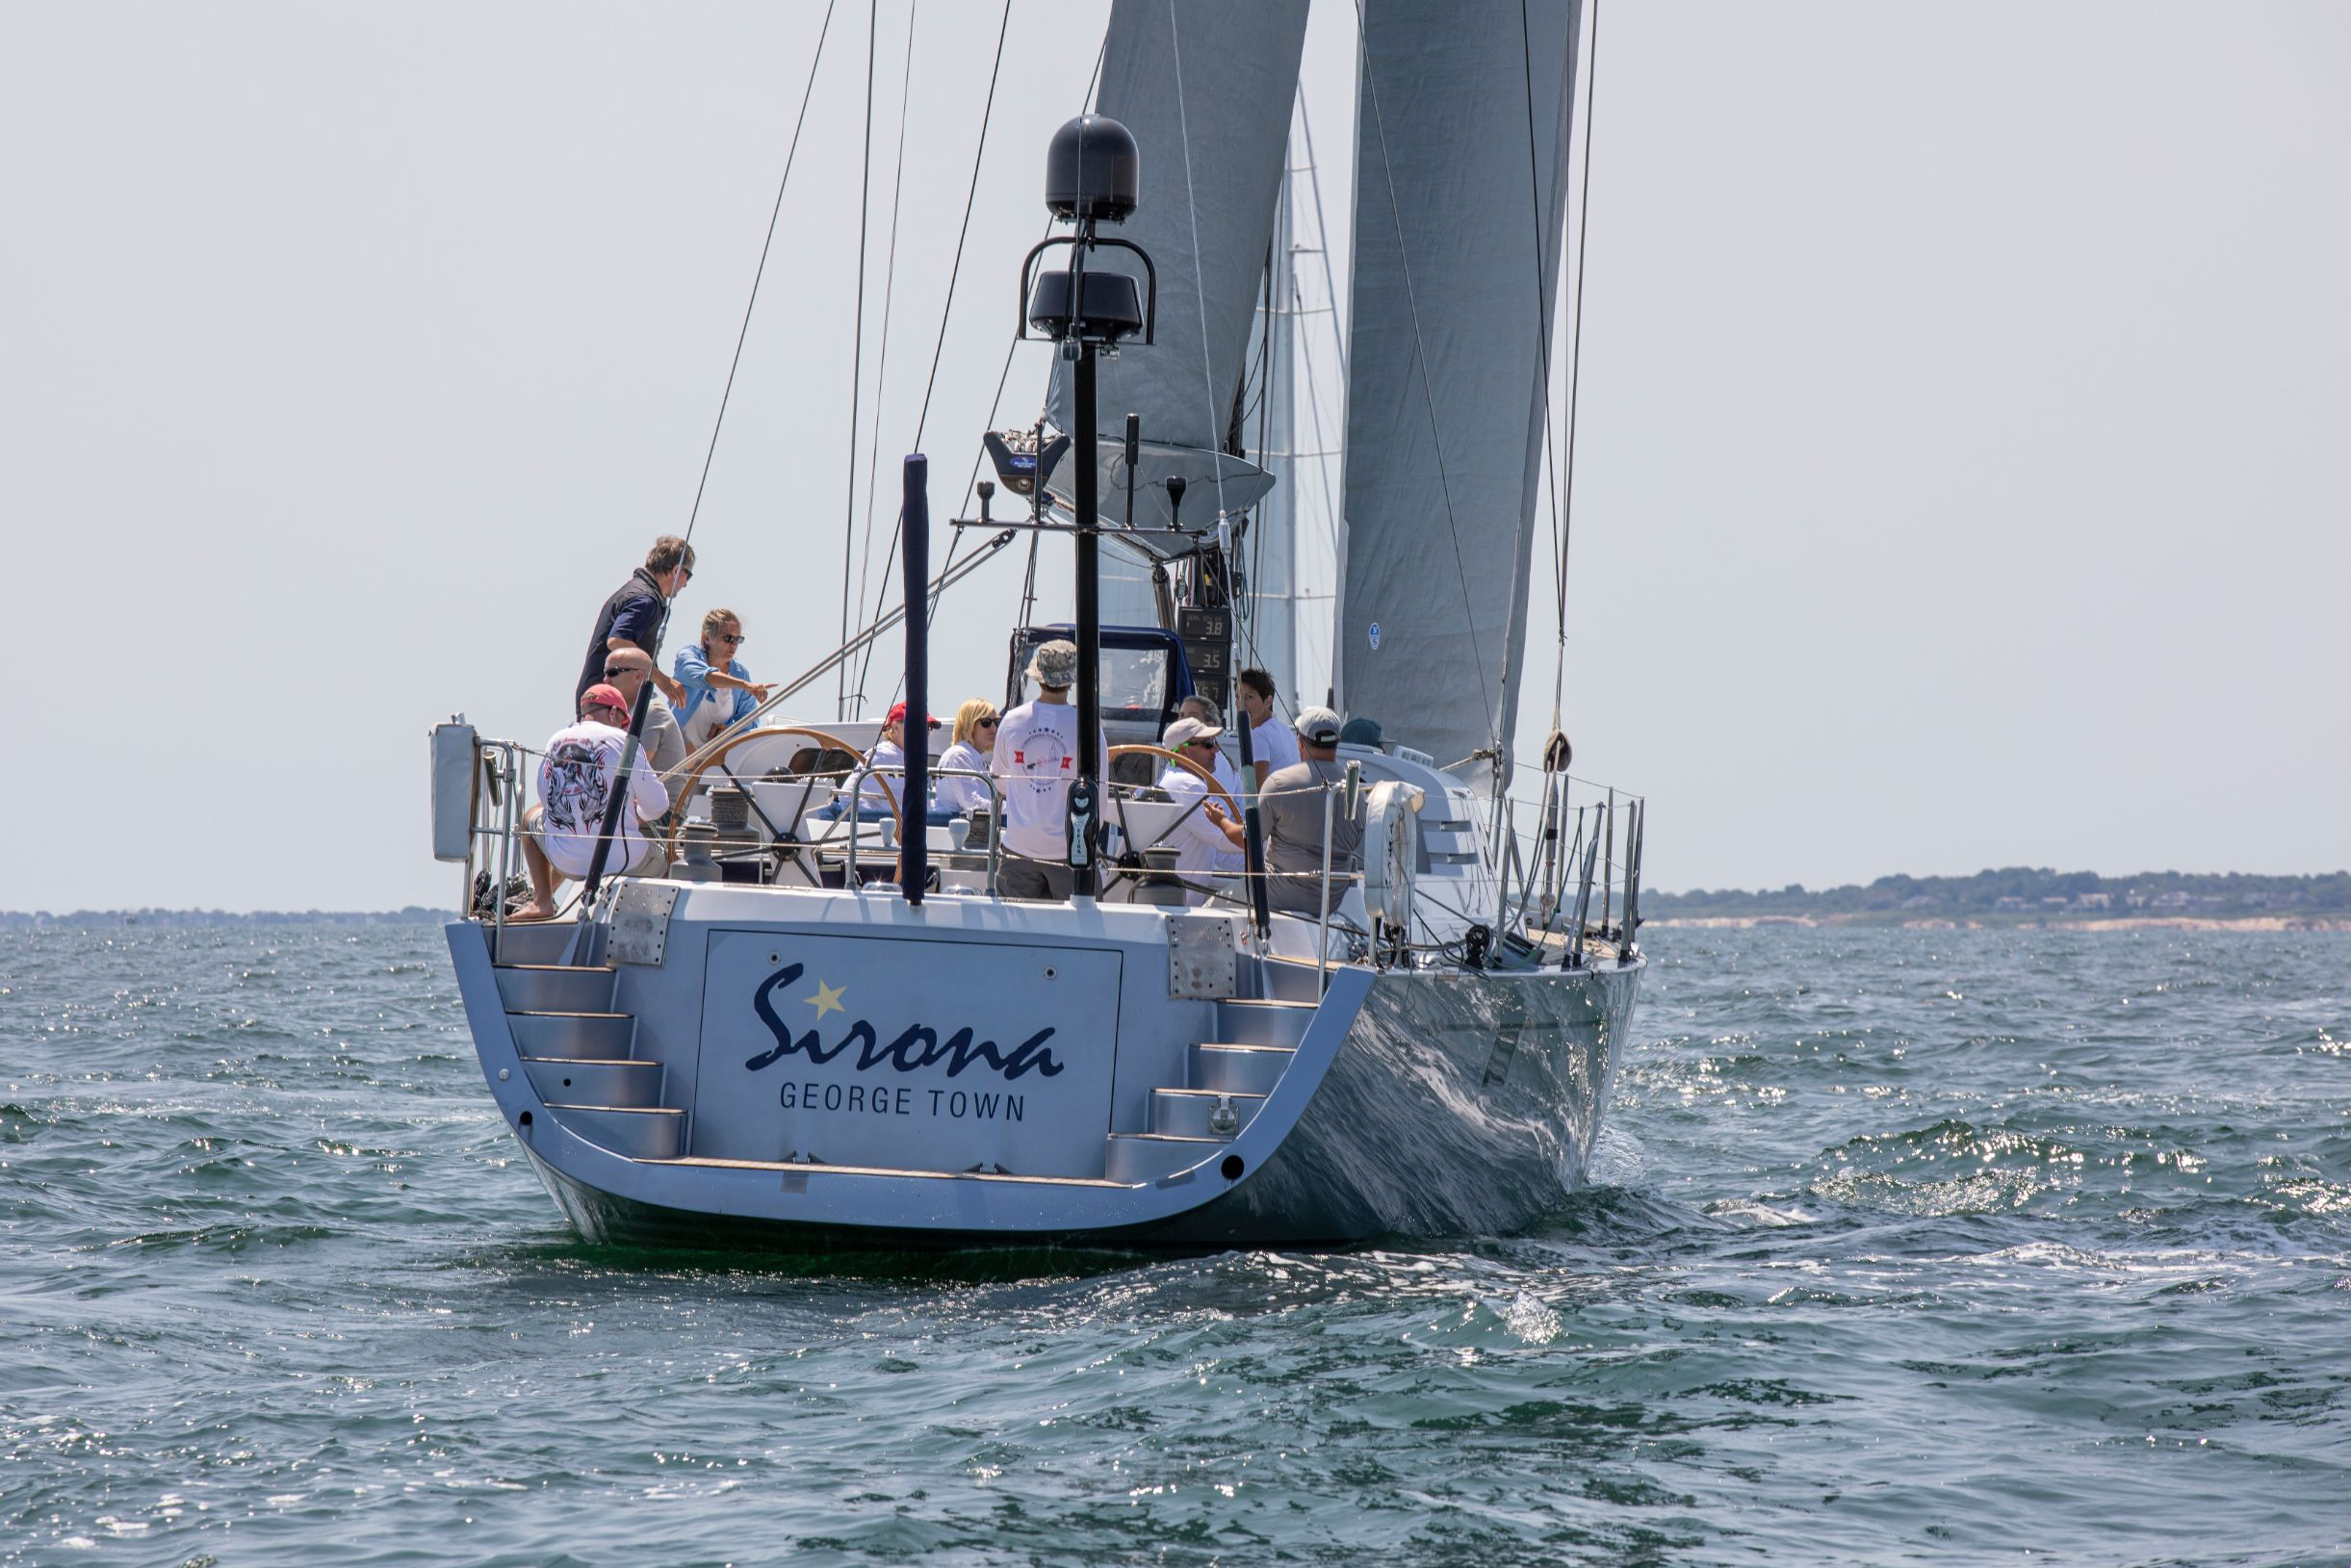 Sirona  is the overall winner of the 2019 Candy Store Cup - Photo: © Billy Black